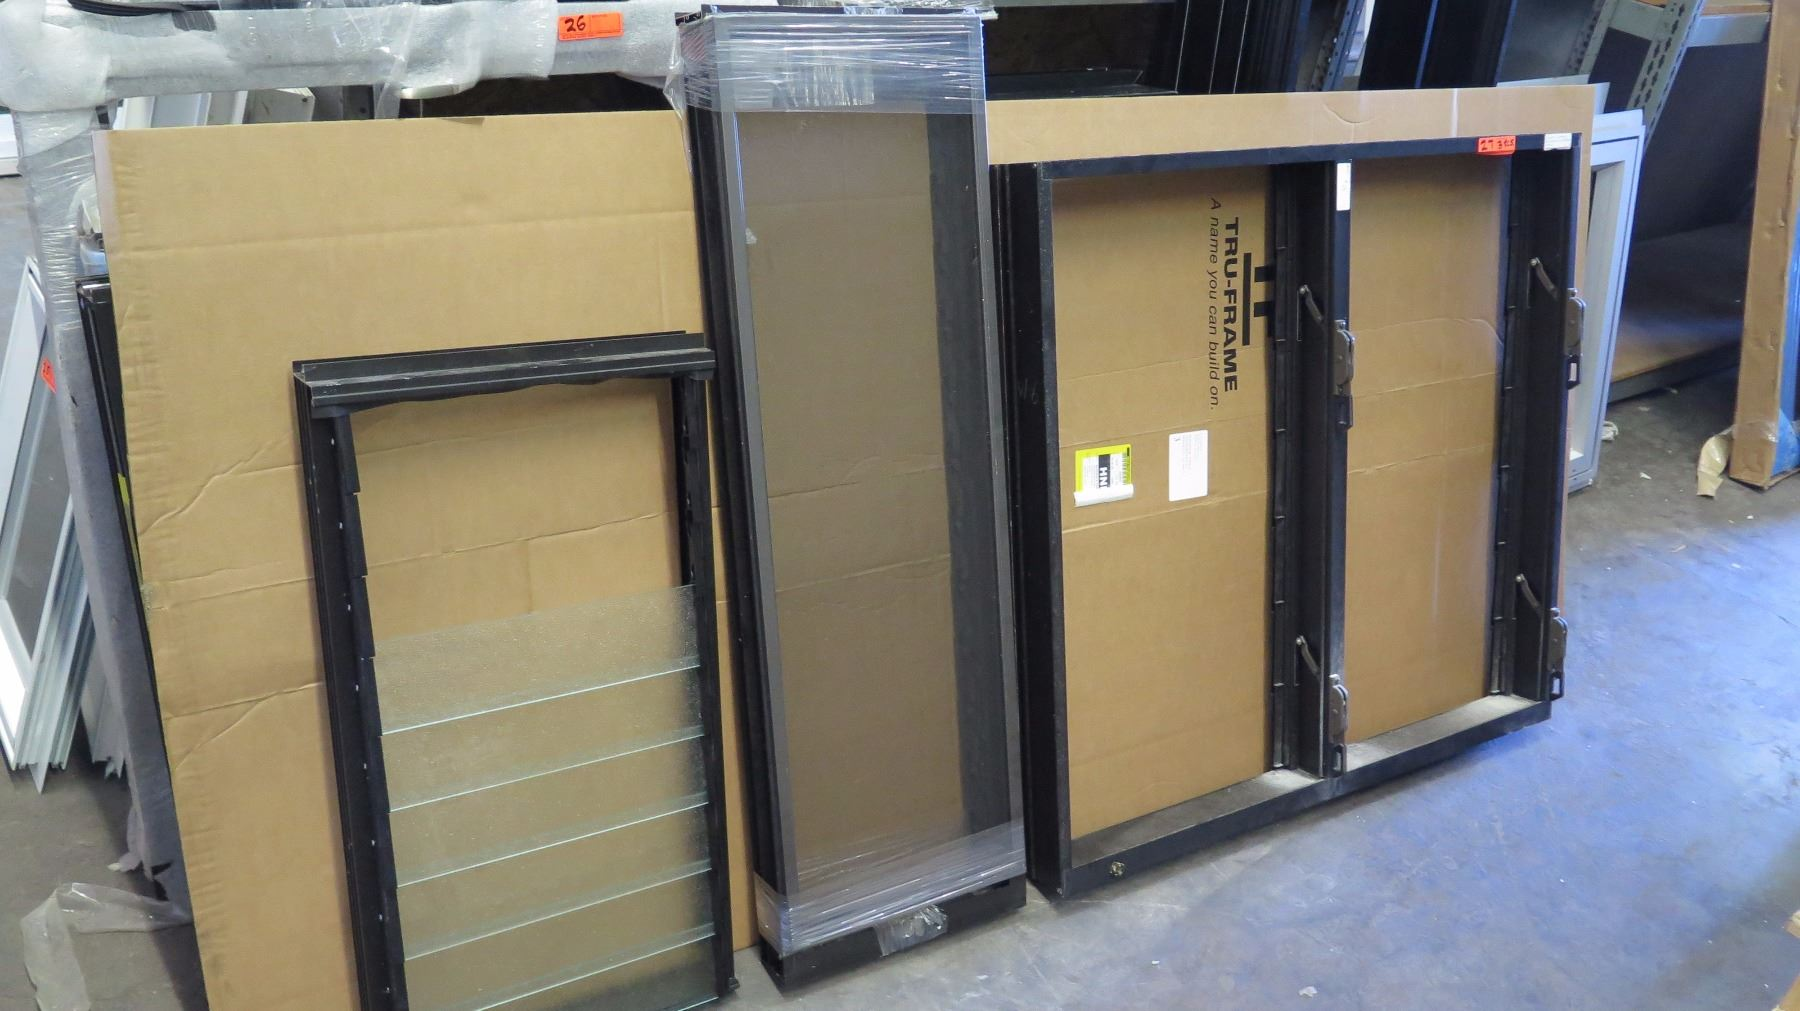 qty 3 misc jalousie windows various sizes bronze anodized block frame oahu auctions. Black Bedroom Furniture Sets. Home Design Ideas